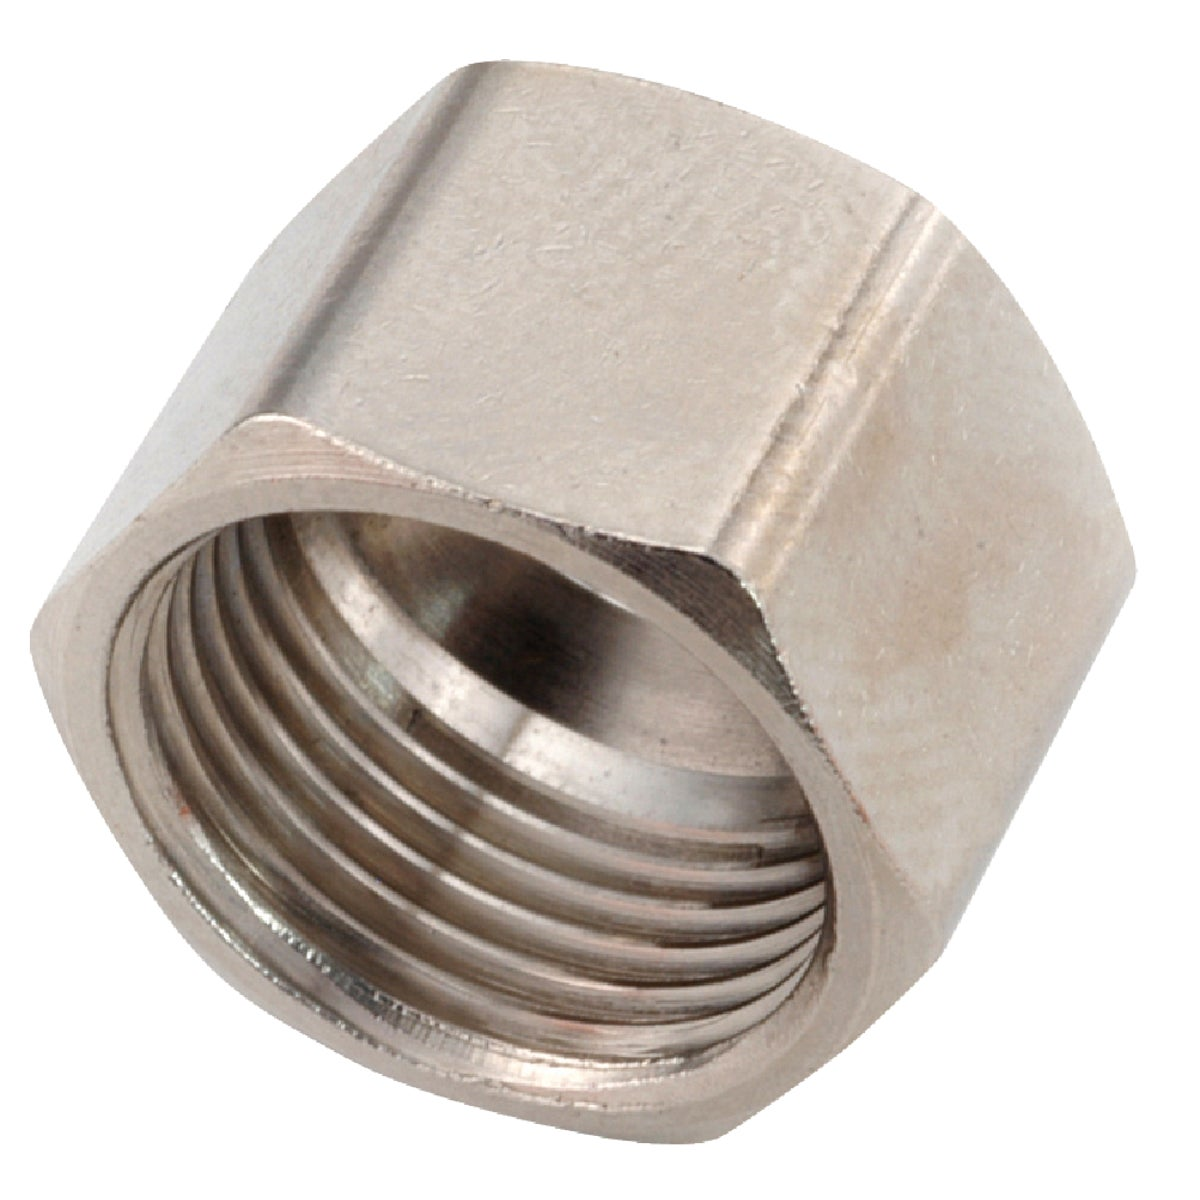 "3/8"" CHR COMPRESSION NUT - 30661-06 by Anderson Metals Corp"